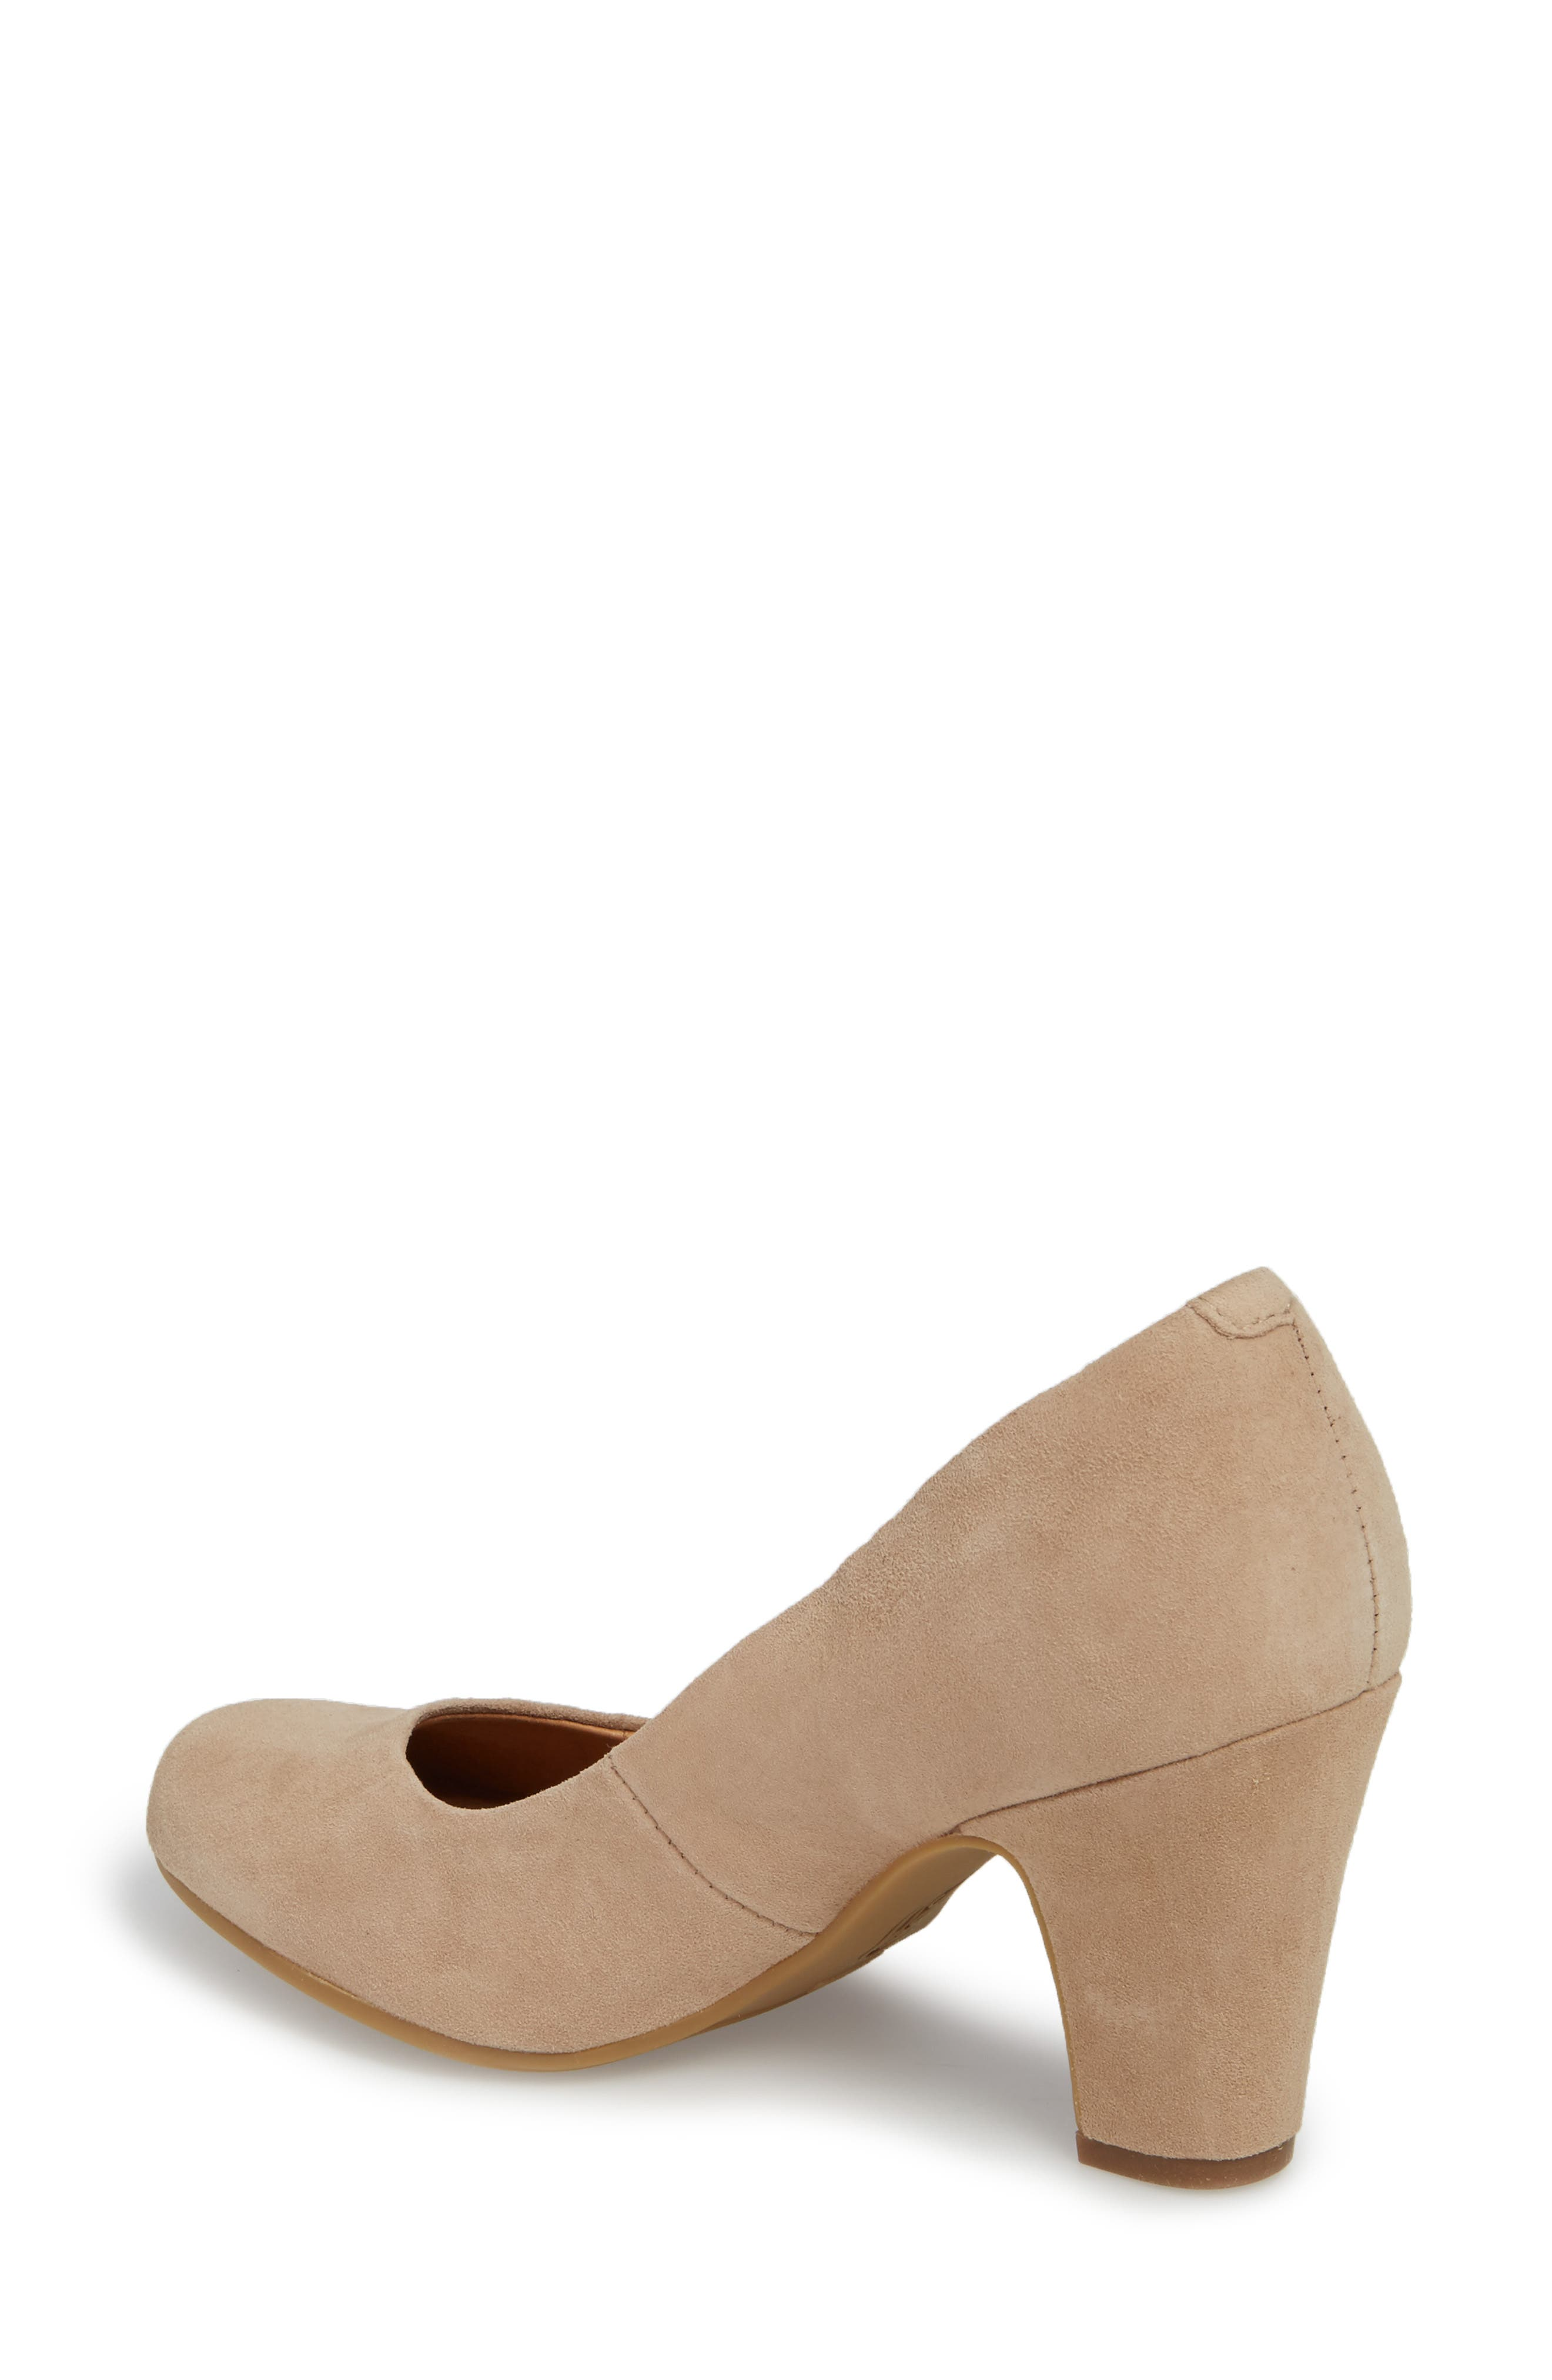 Madina Pump,                             Alternate thumbnail 2, color,                             BAYWATER SUEDE